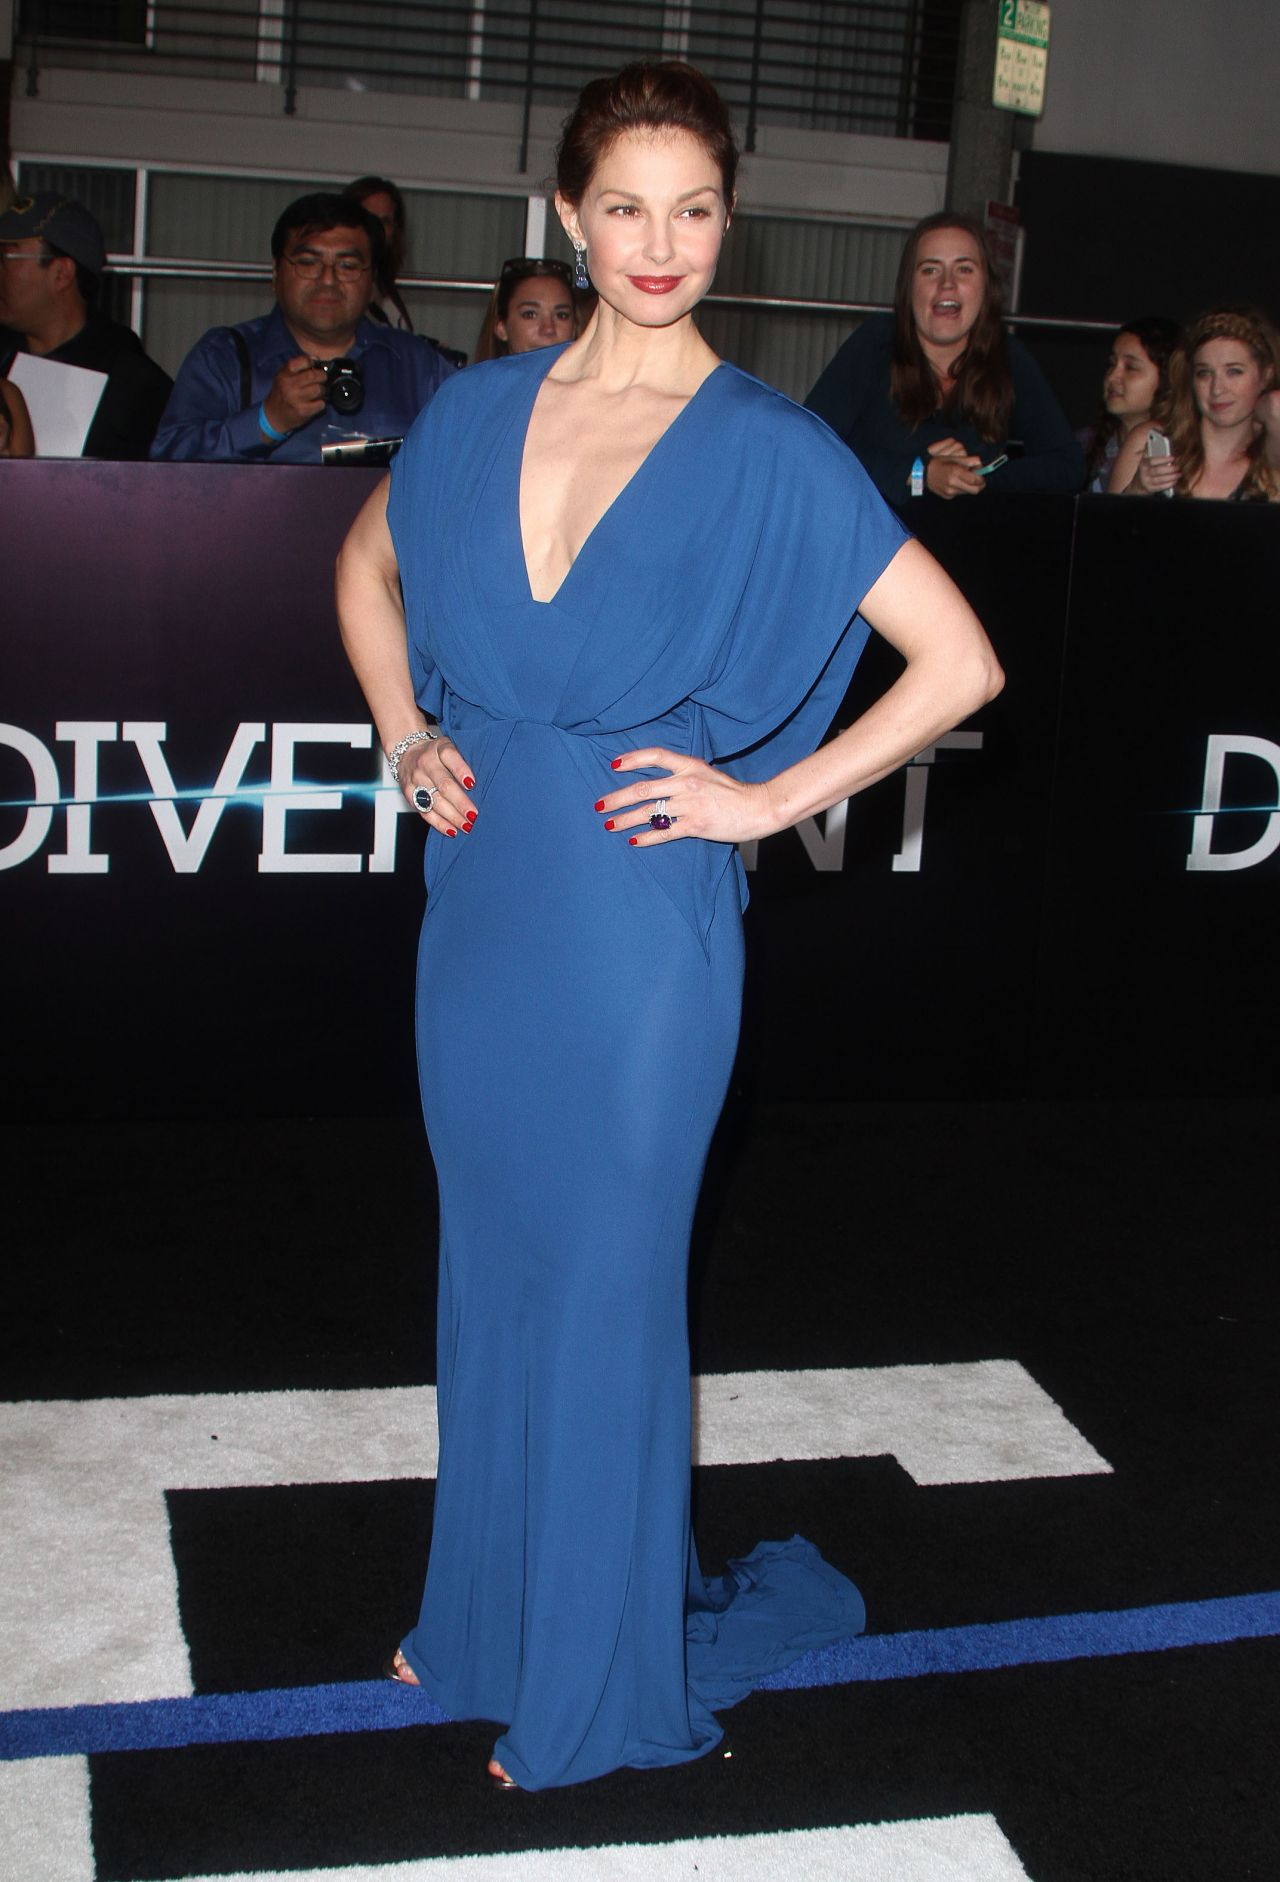 Ashley Judd Wearing Elie Saab V-Neck Dress - 'Divergent' World Premiere in Los Angeles